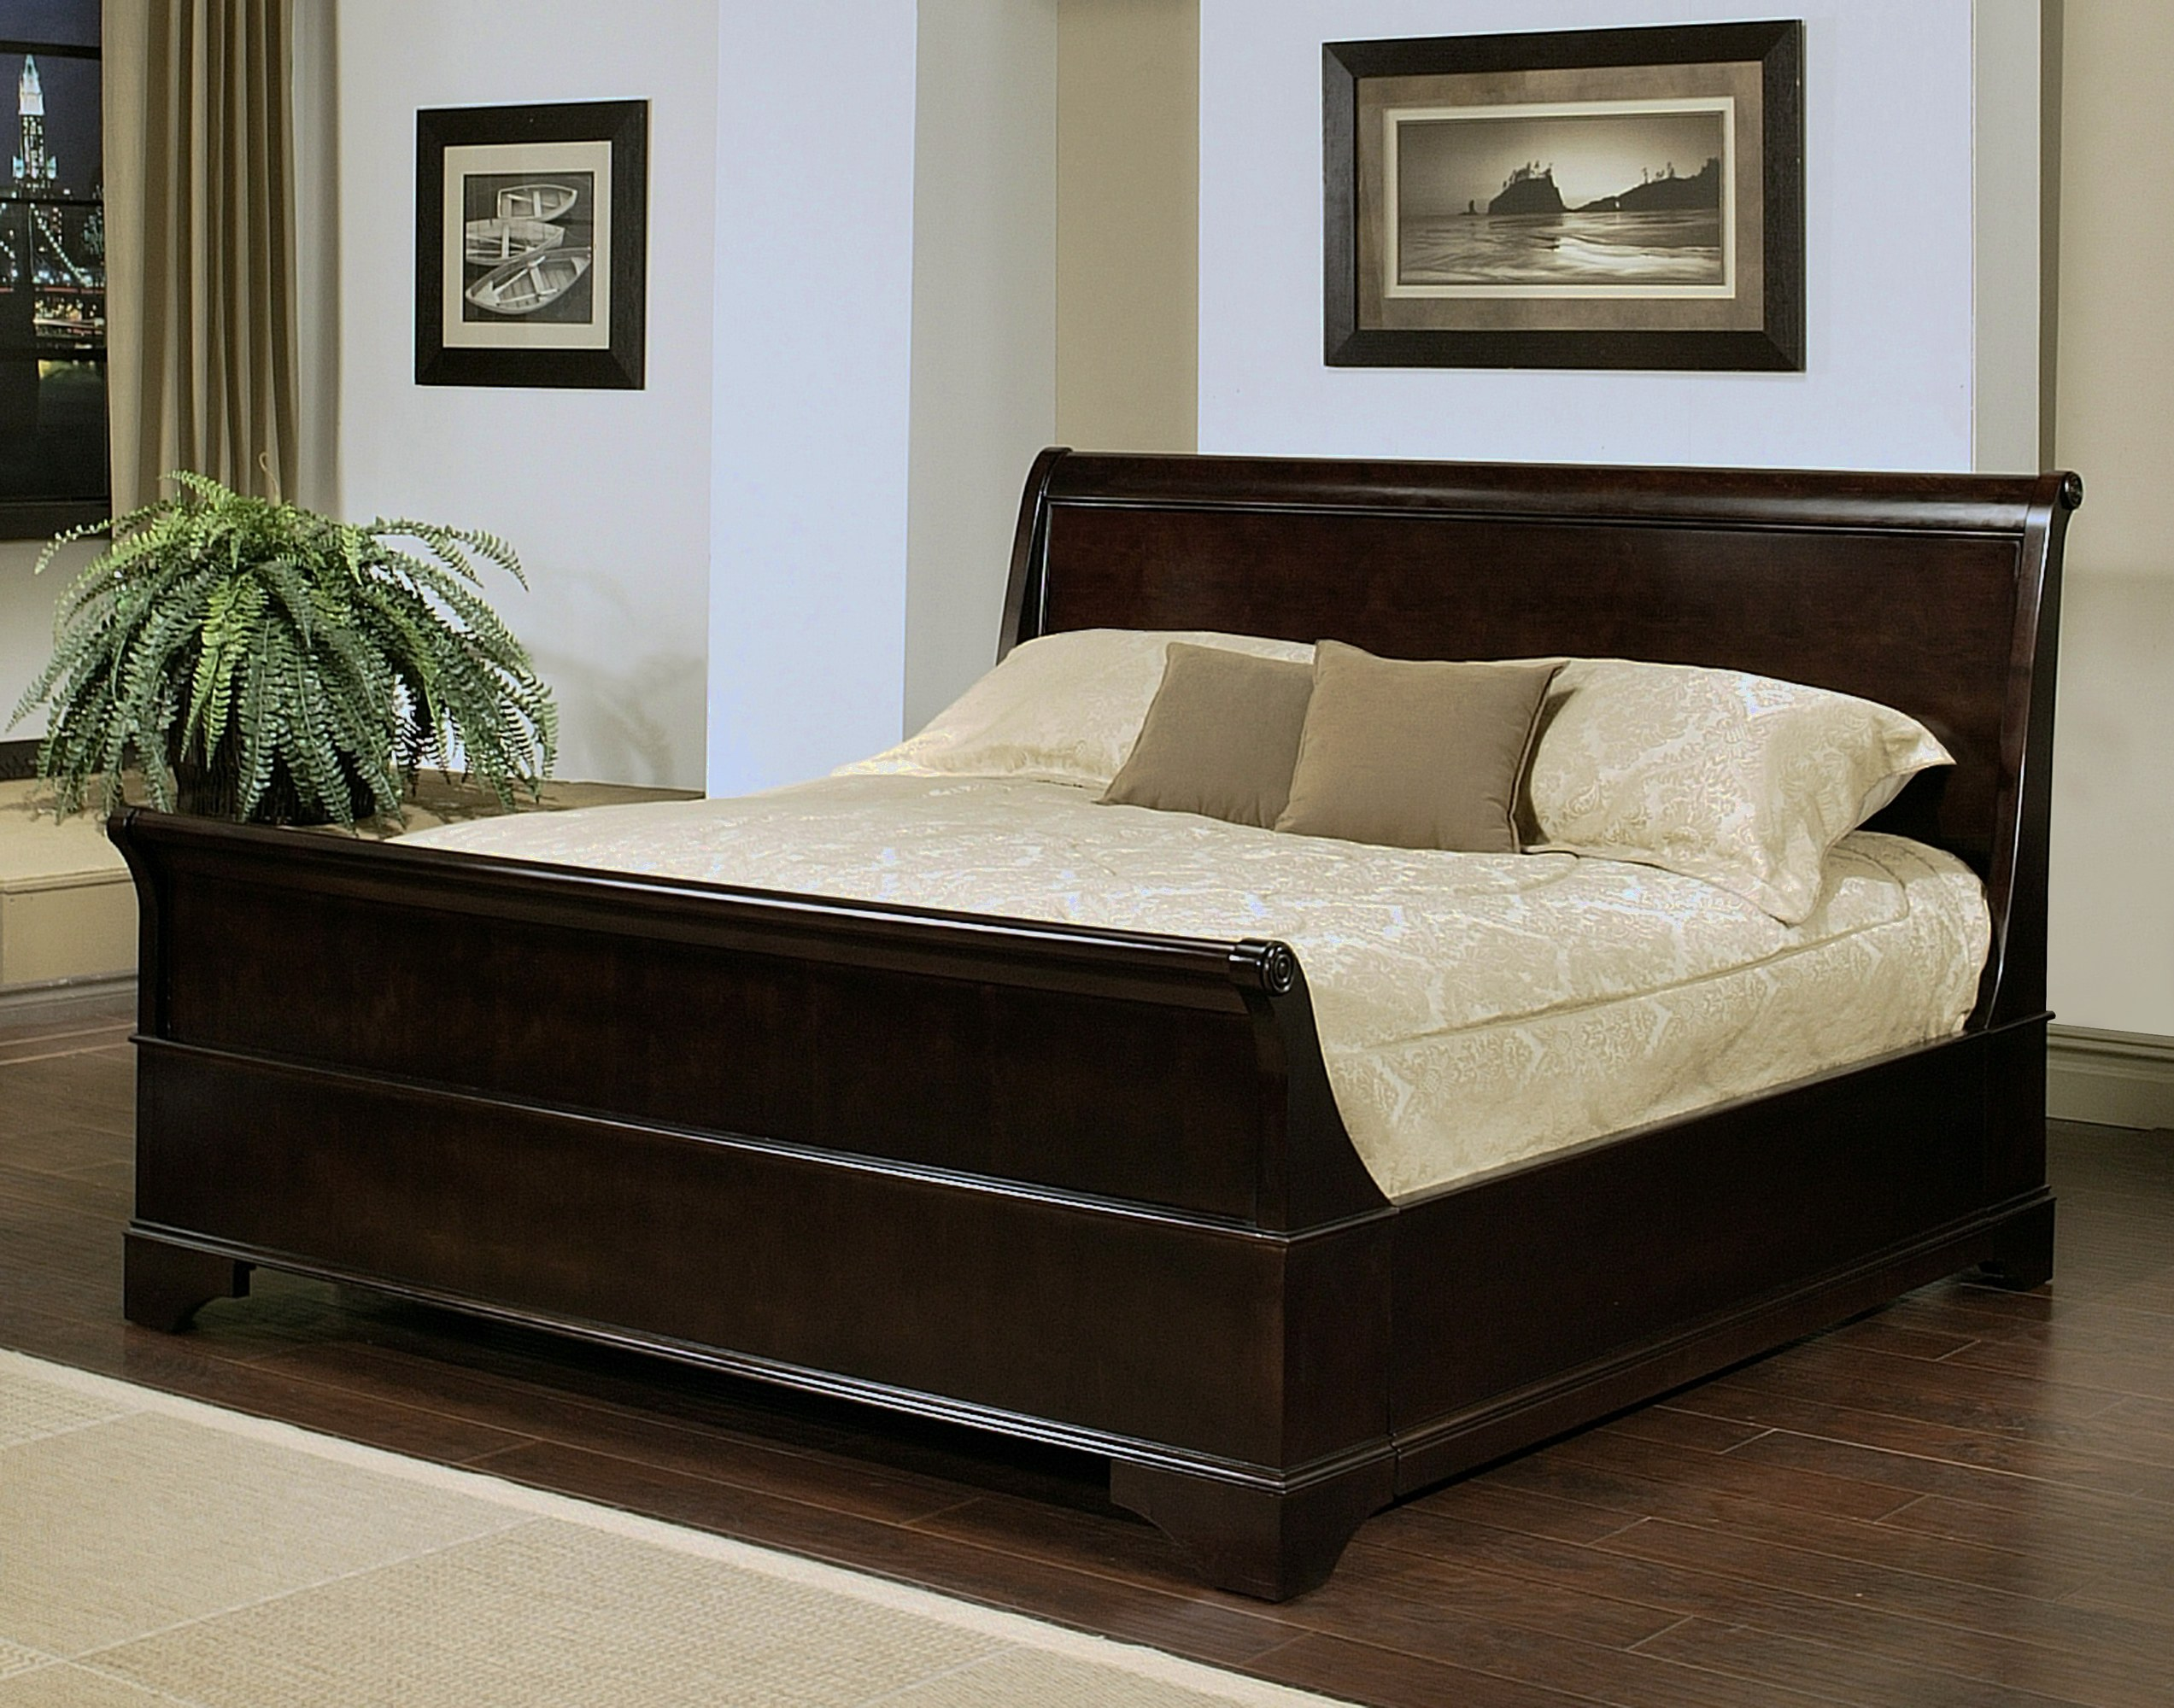 kingston sleigh bed by abbyson living hm 5050 0020. Black Bedroom Furniture Sets. Home Design Ideas